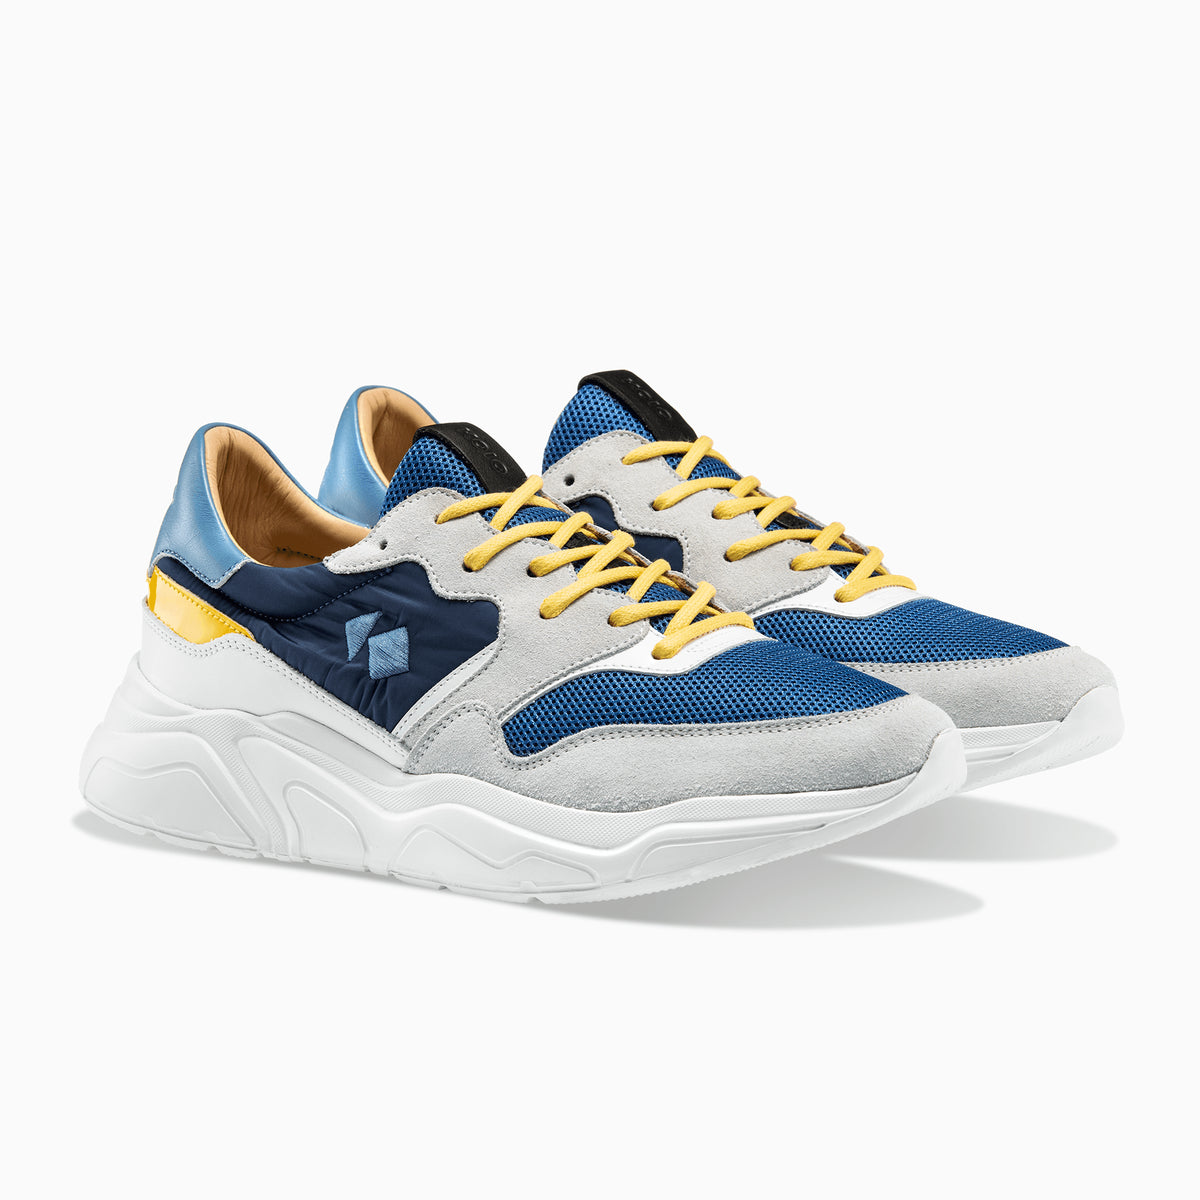 0d3f6529296b4 Men's Low Top Chunky Sneaker | Avalanche Blue/Yellow – KOIO